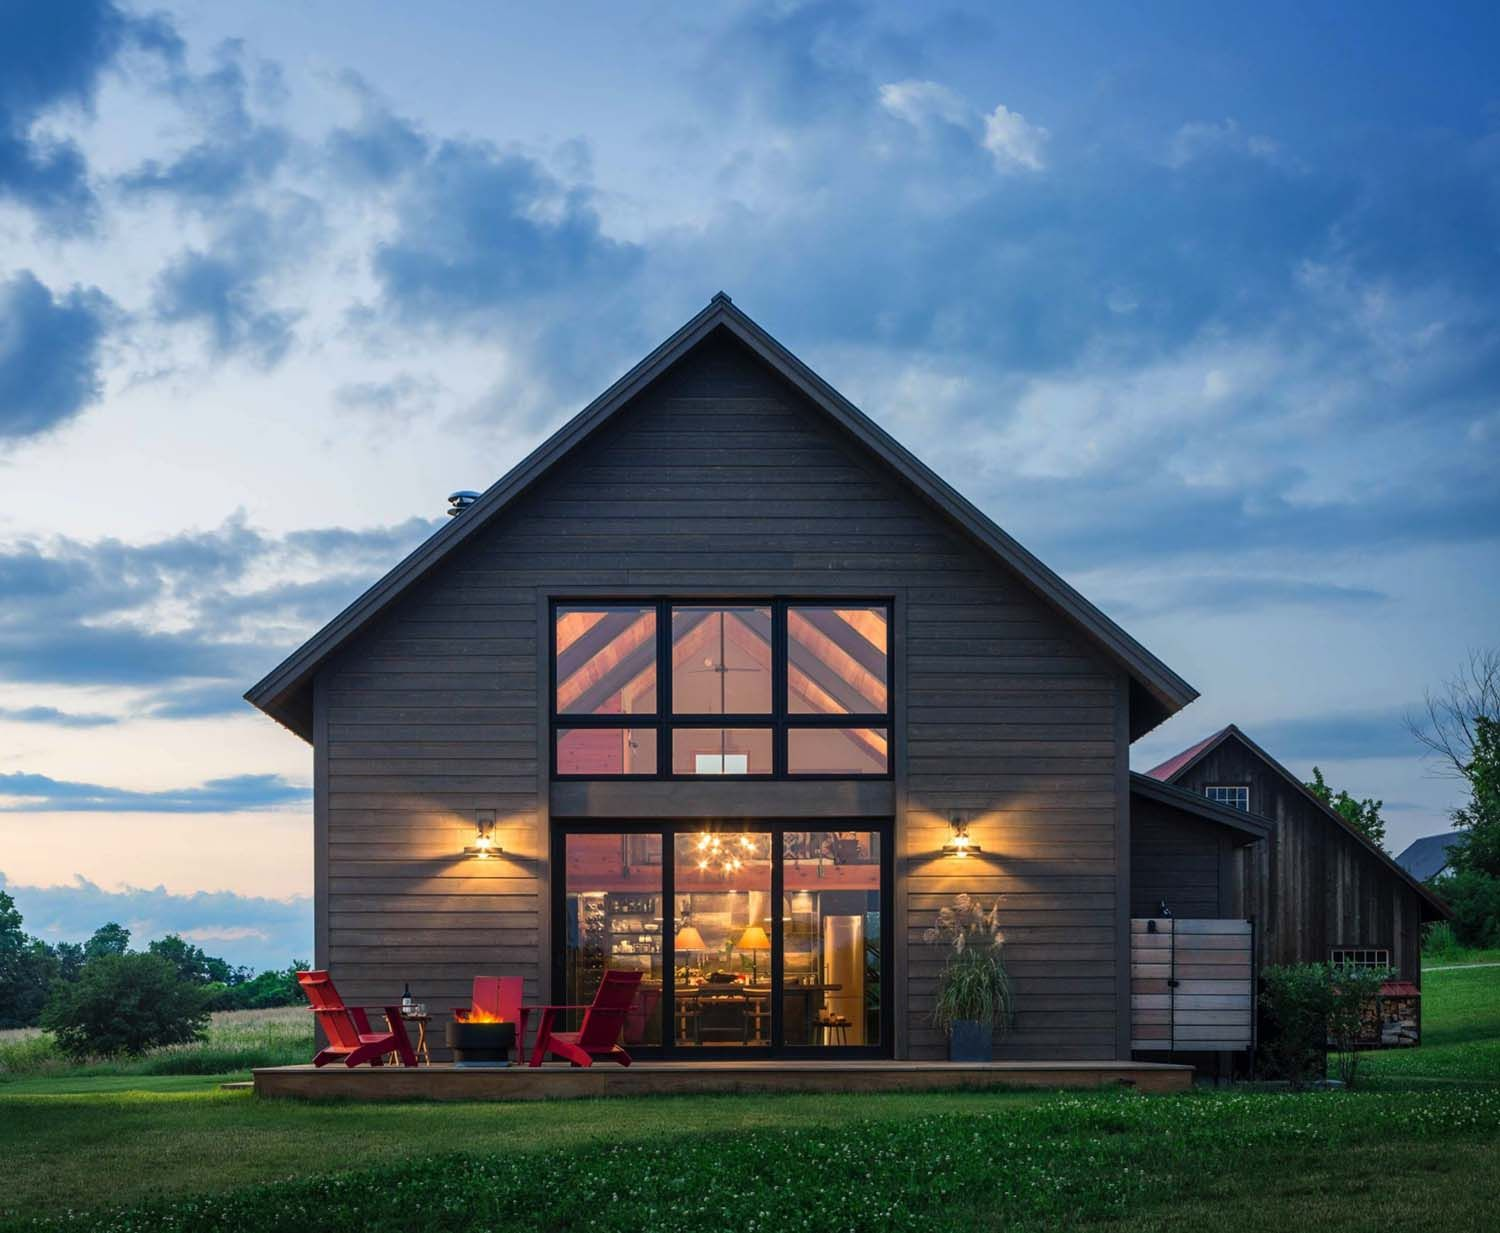 This modern barn house was designed by joan heaton architects along with builder silver maple construction located in weybridge vermont